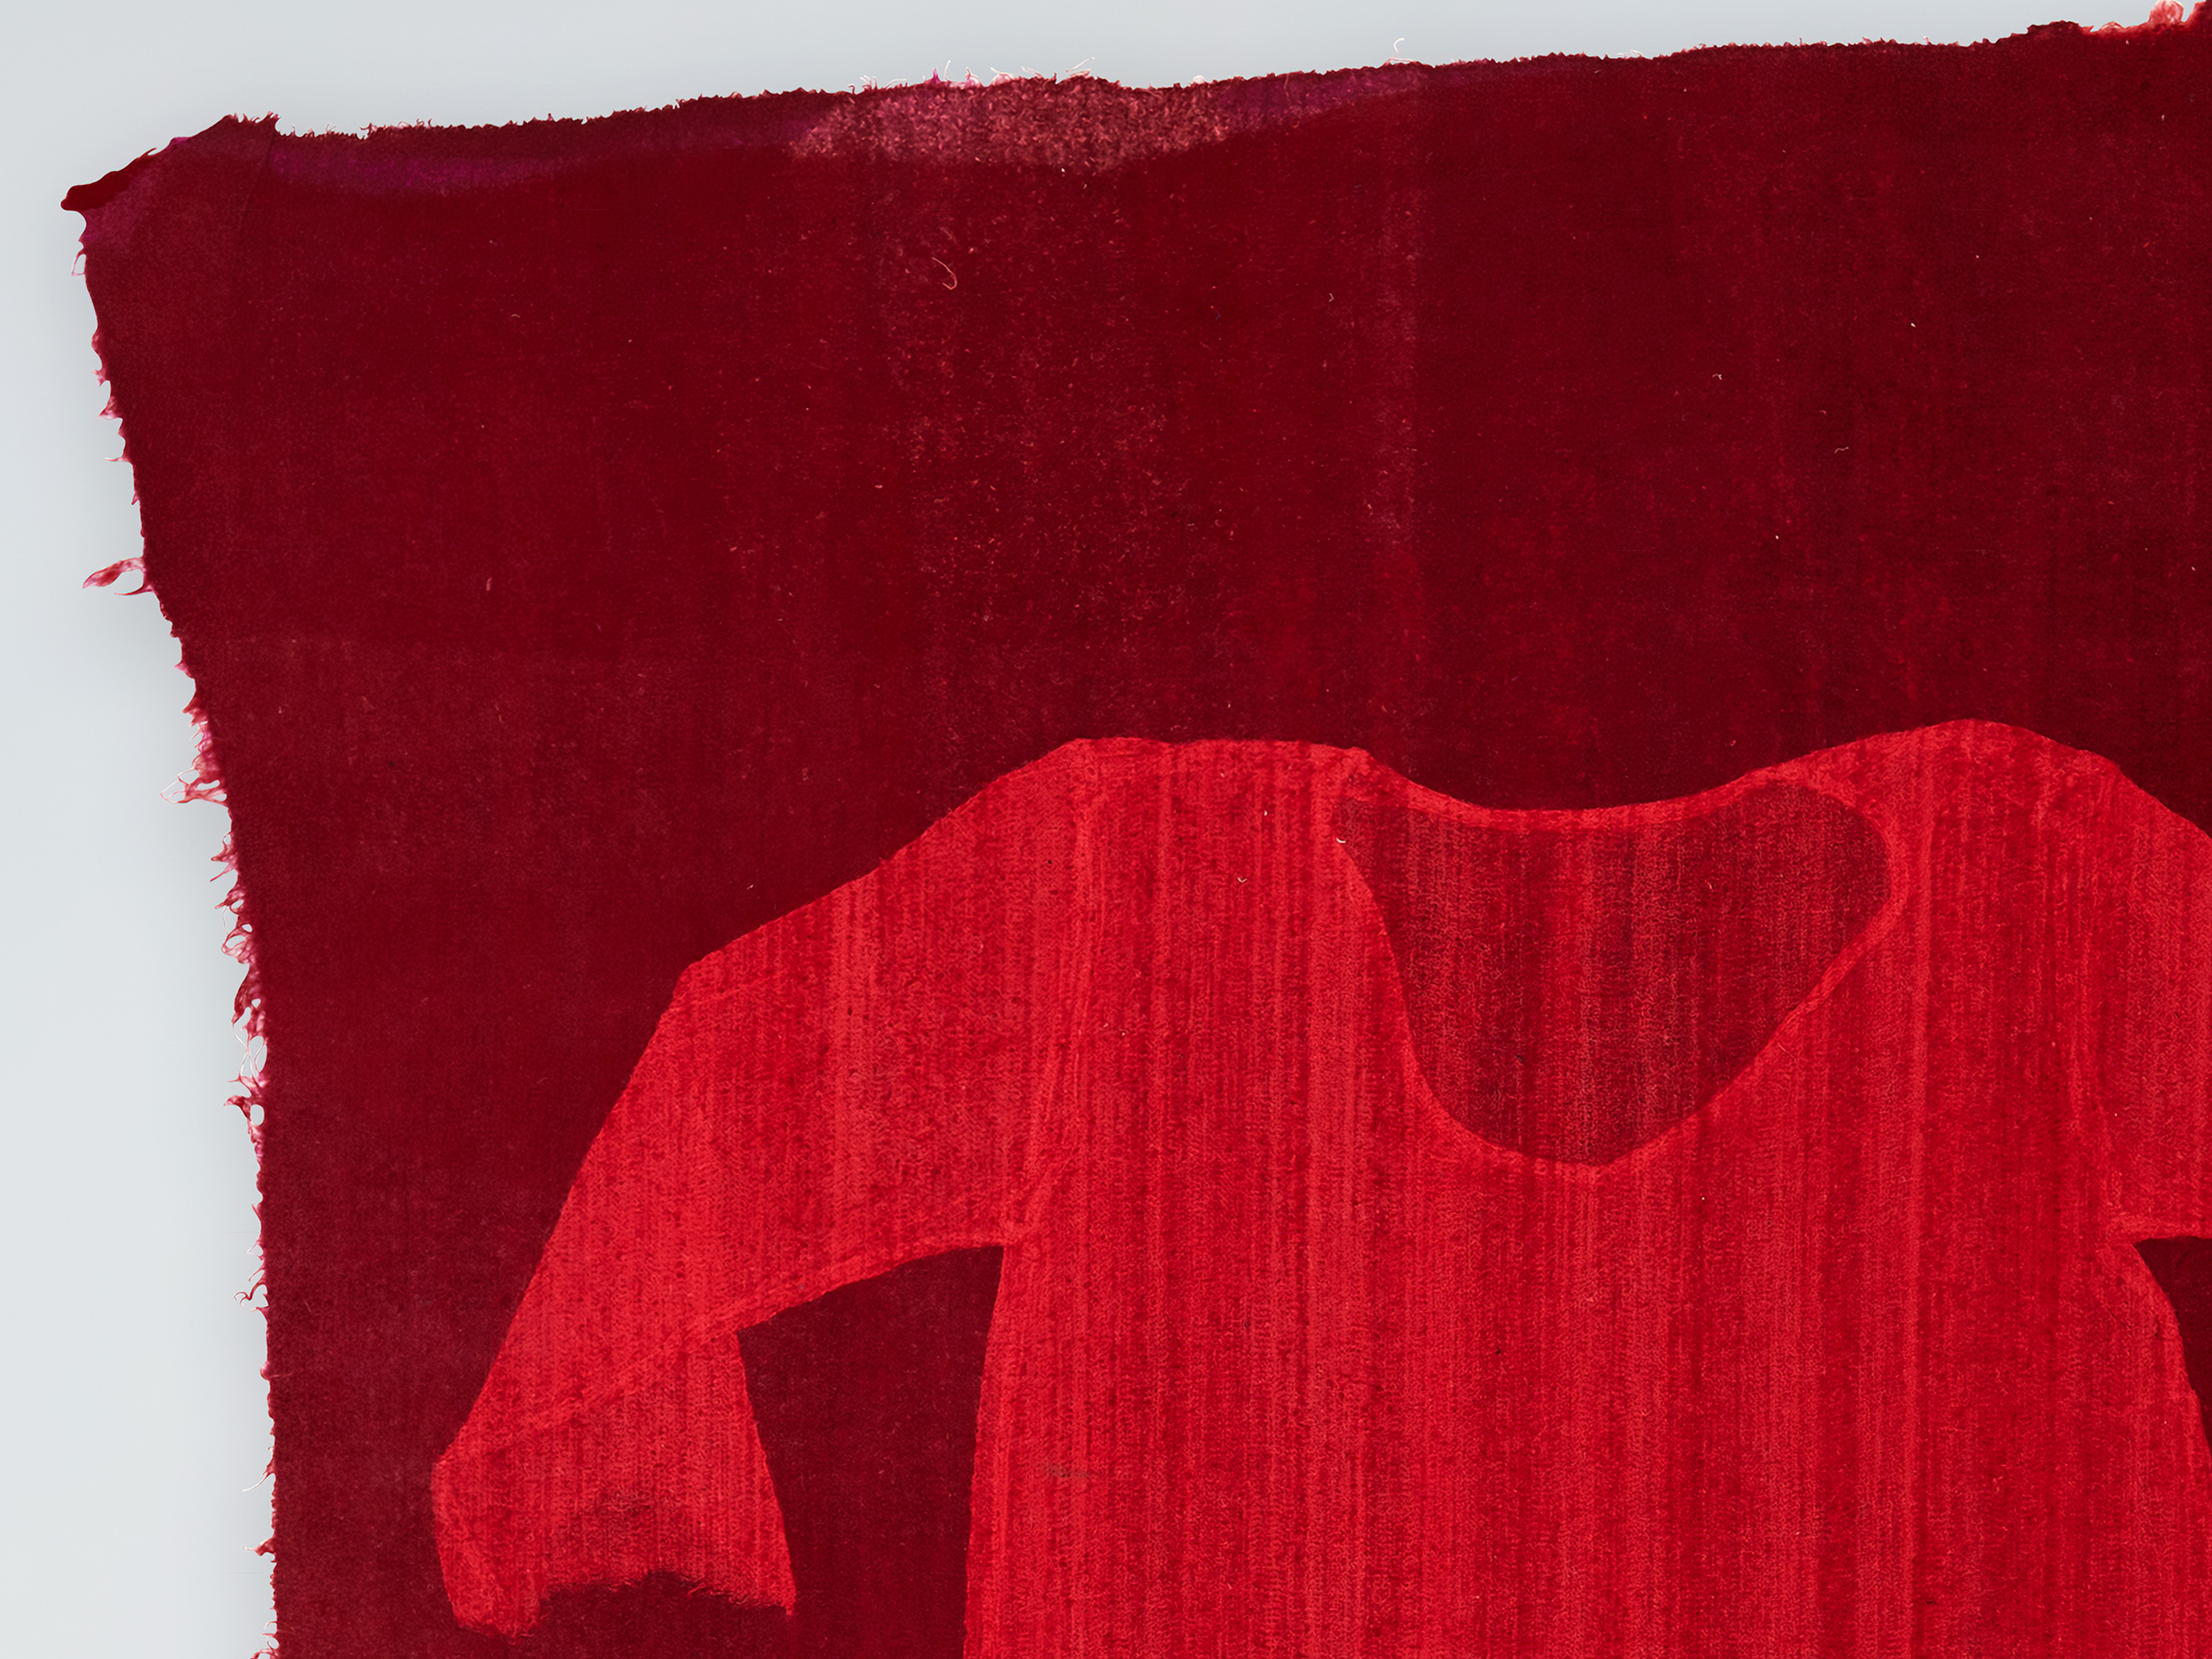 My-Old-Red-Shirt-Detail.jpg